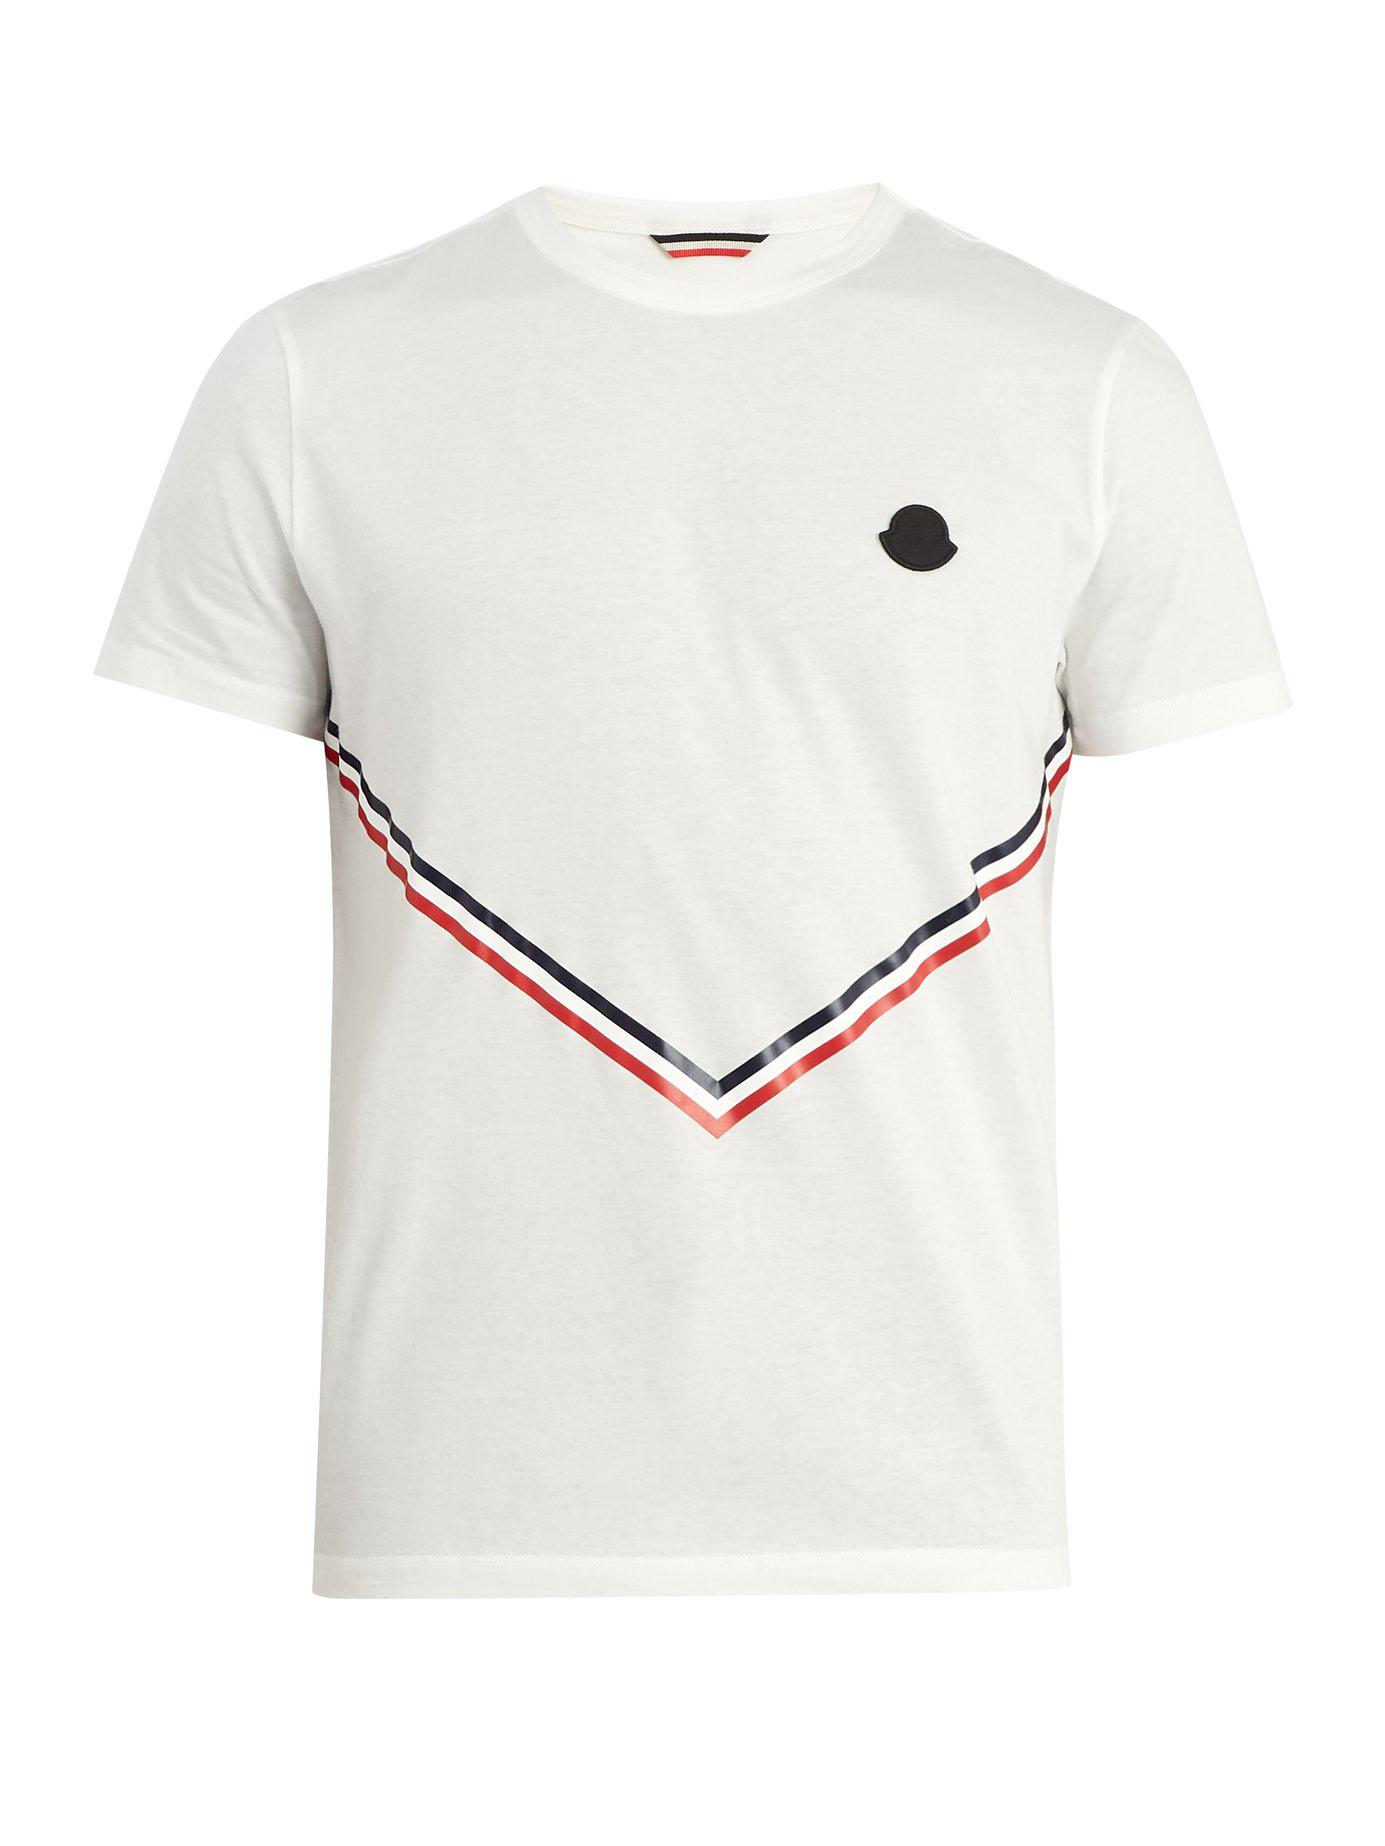 a9a4f12d2 Lyst - Moncler Stripe Print Cotton T Shirt in White for Men